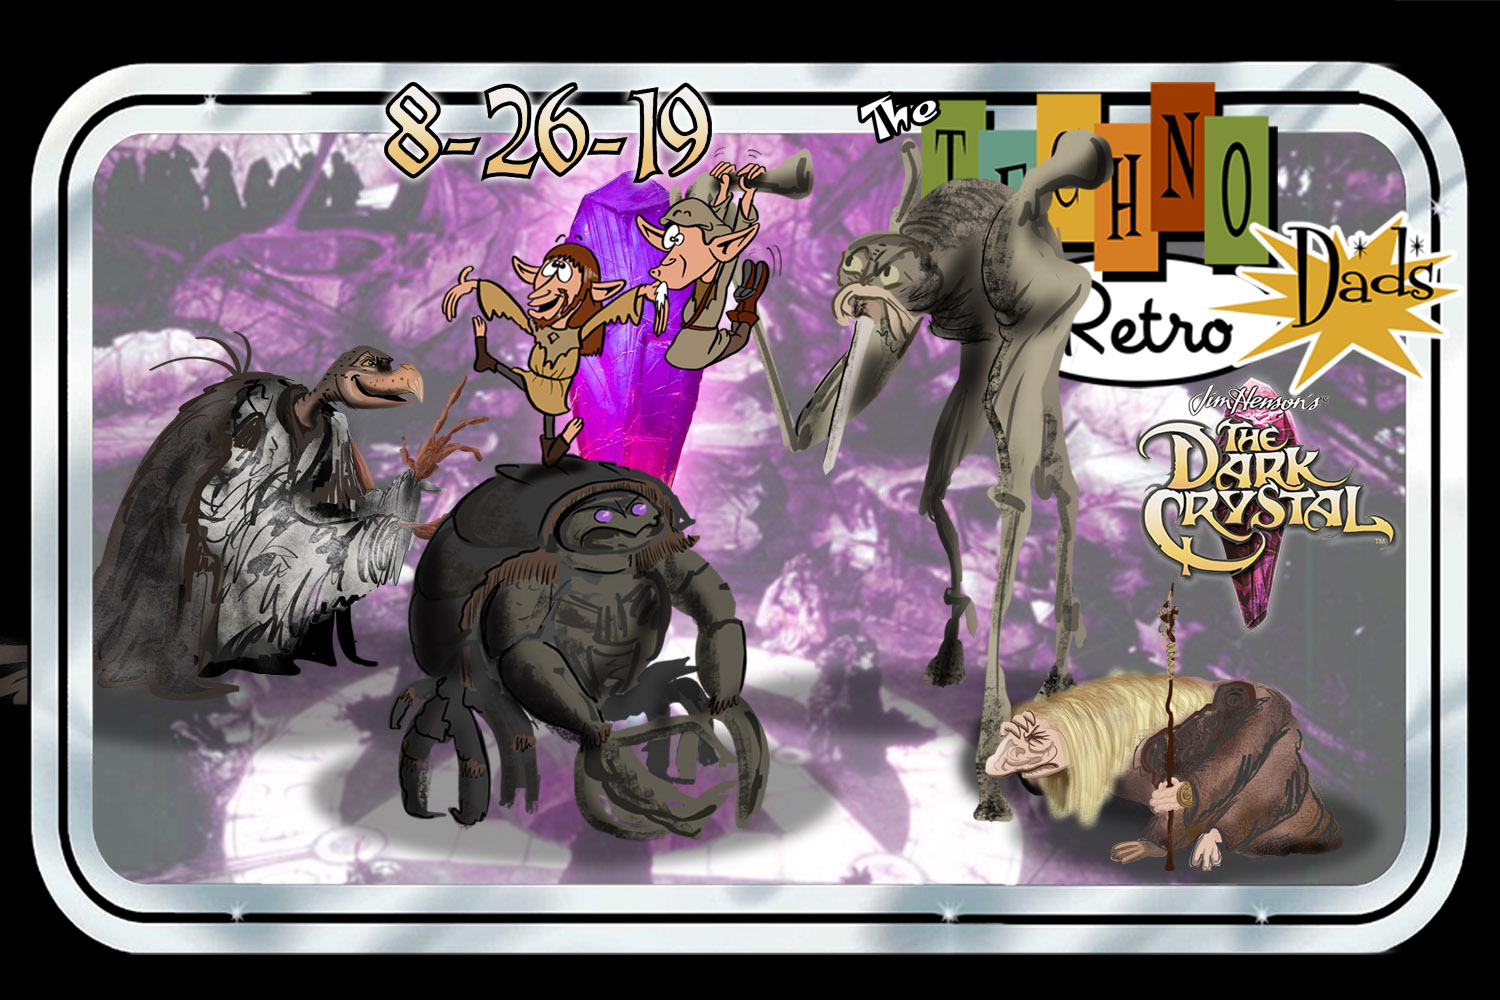 RetroZap's TechnoRetro Dads watch The Dark Crystal